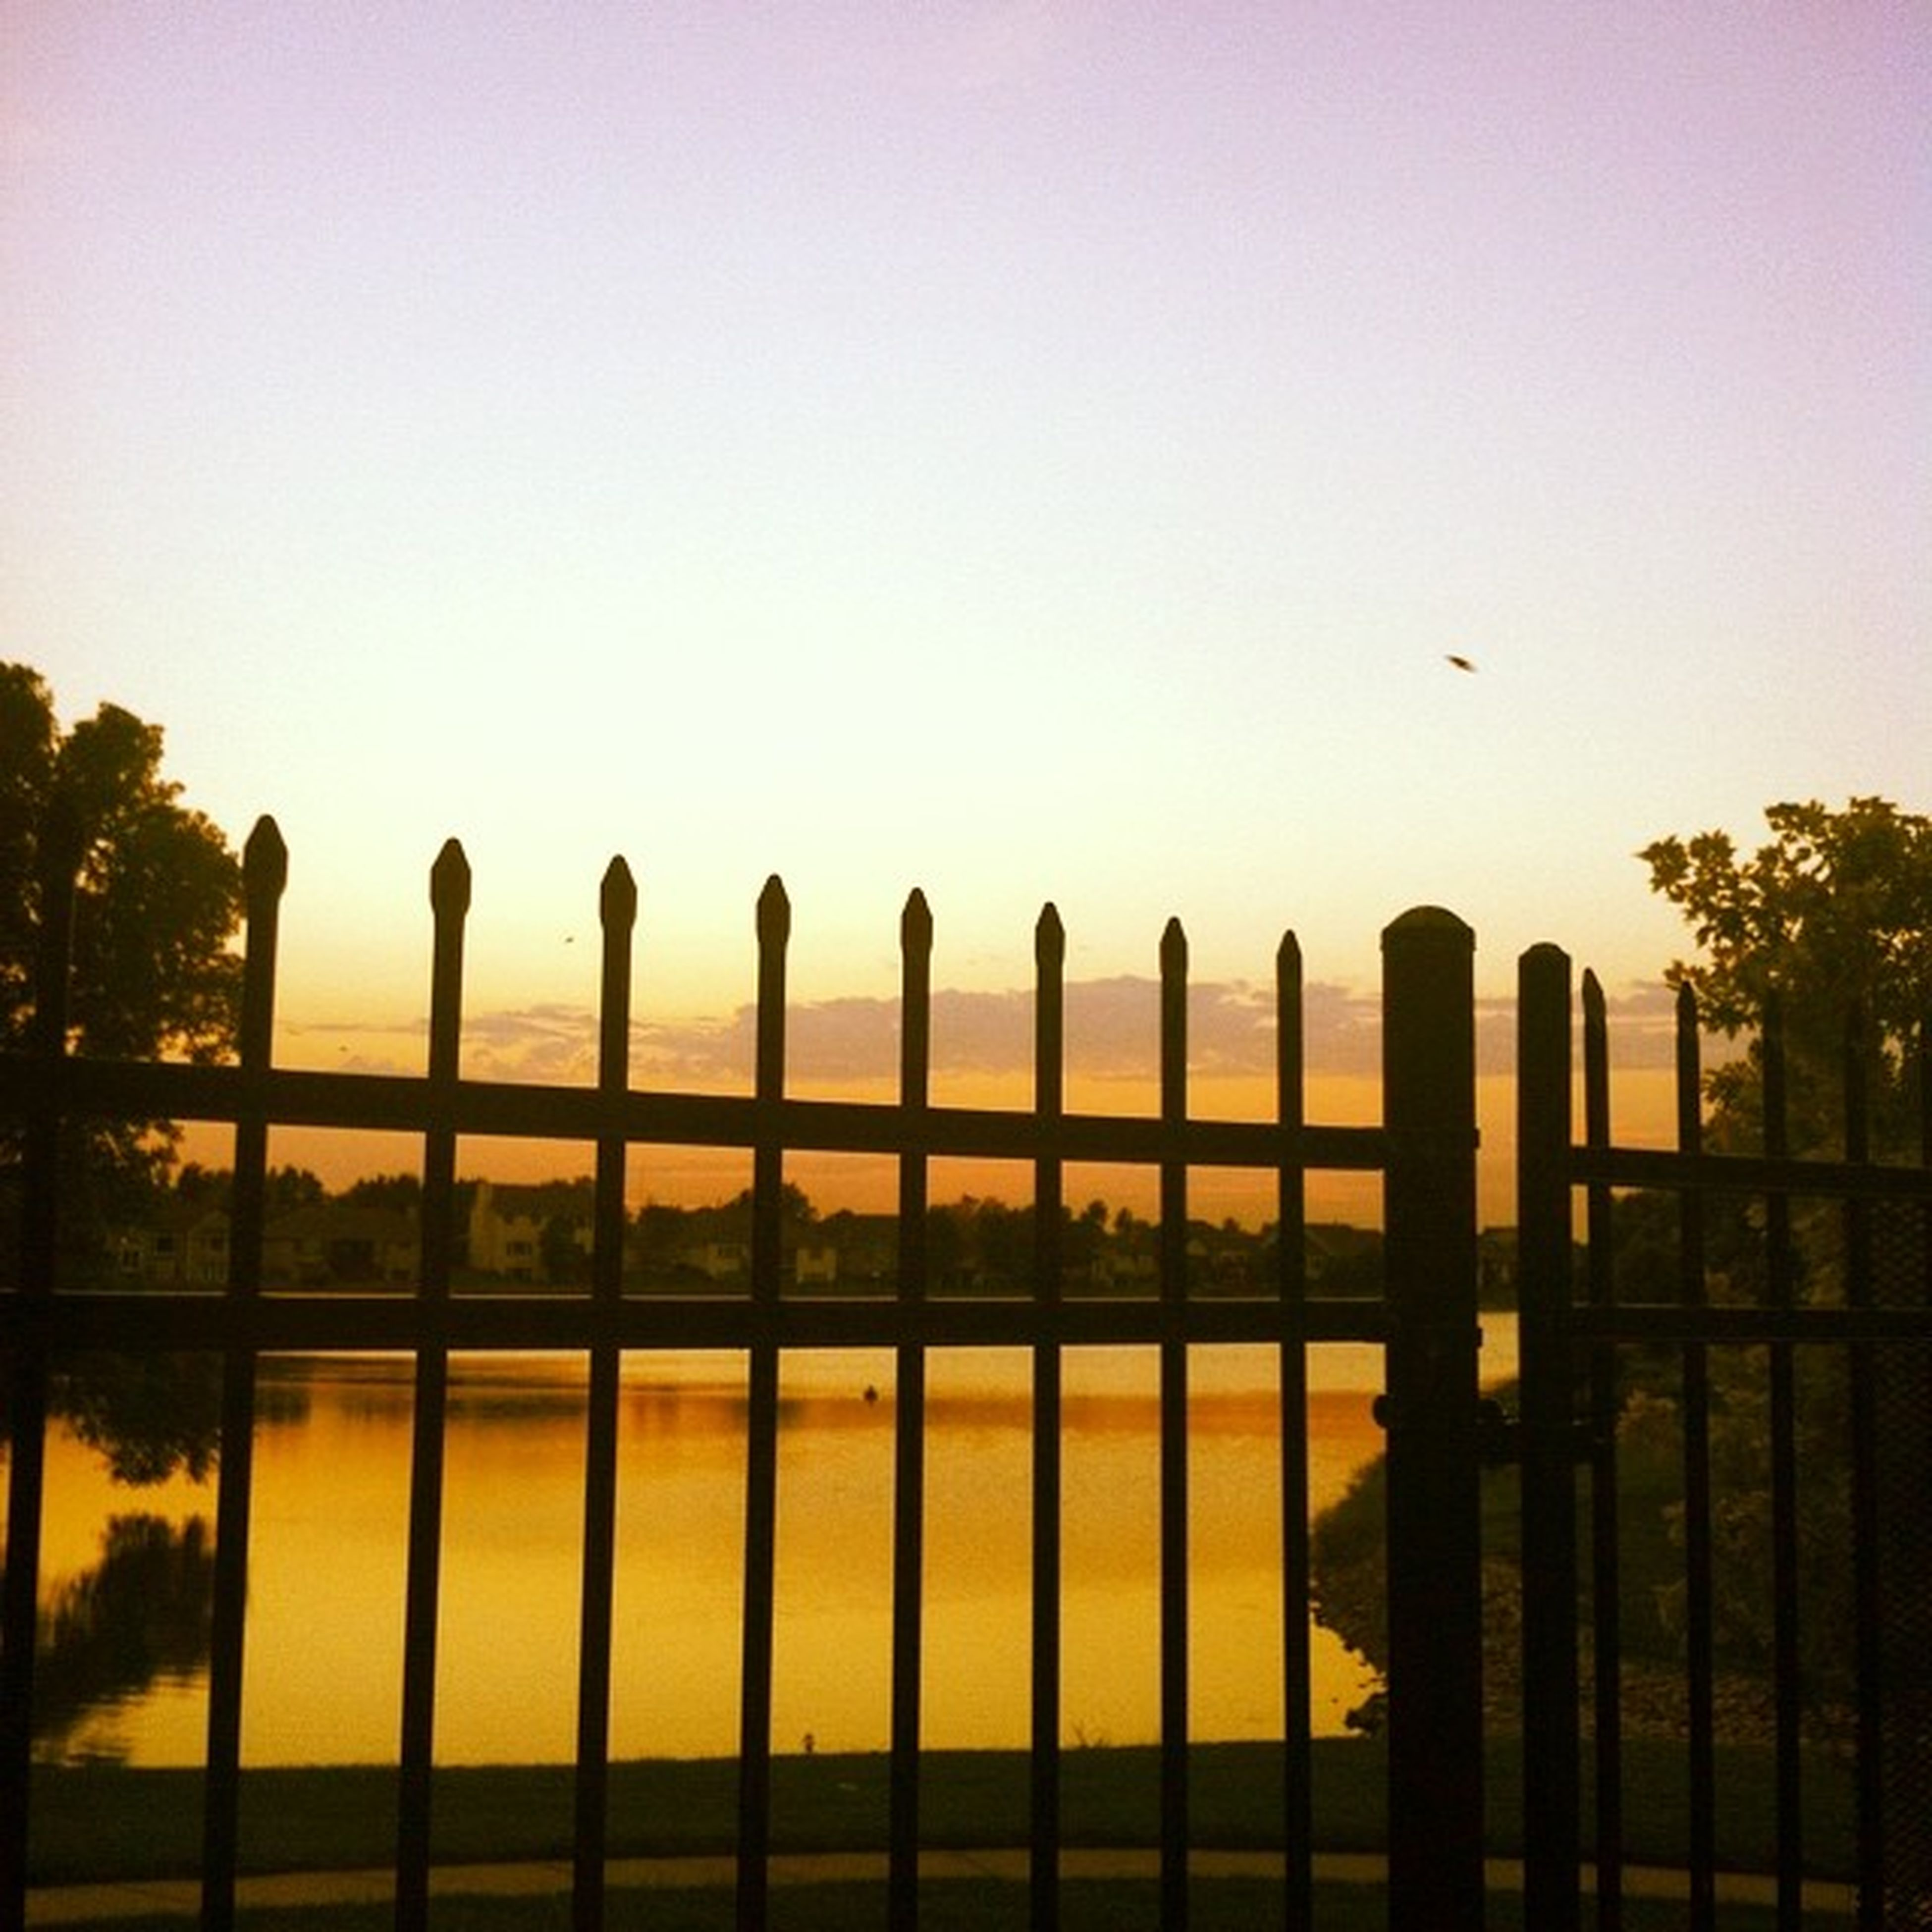 clear sky, sunset, fence, built structure, silhouette, architecture, tree, sky, protection, copy space, safety, nature, tranquility, railing, outdoors, bird, security, building exterior, no people, tranquil scene